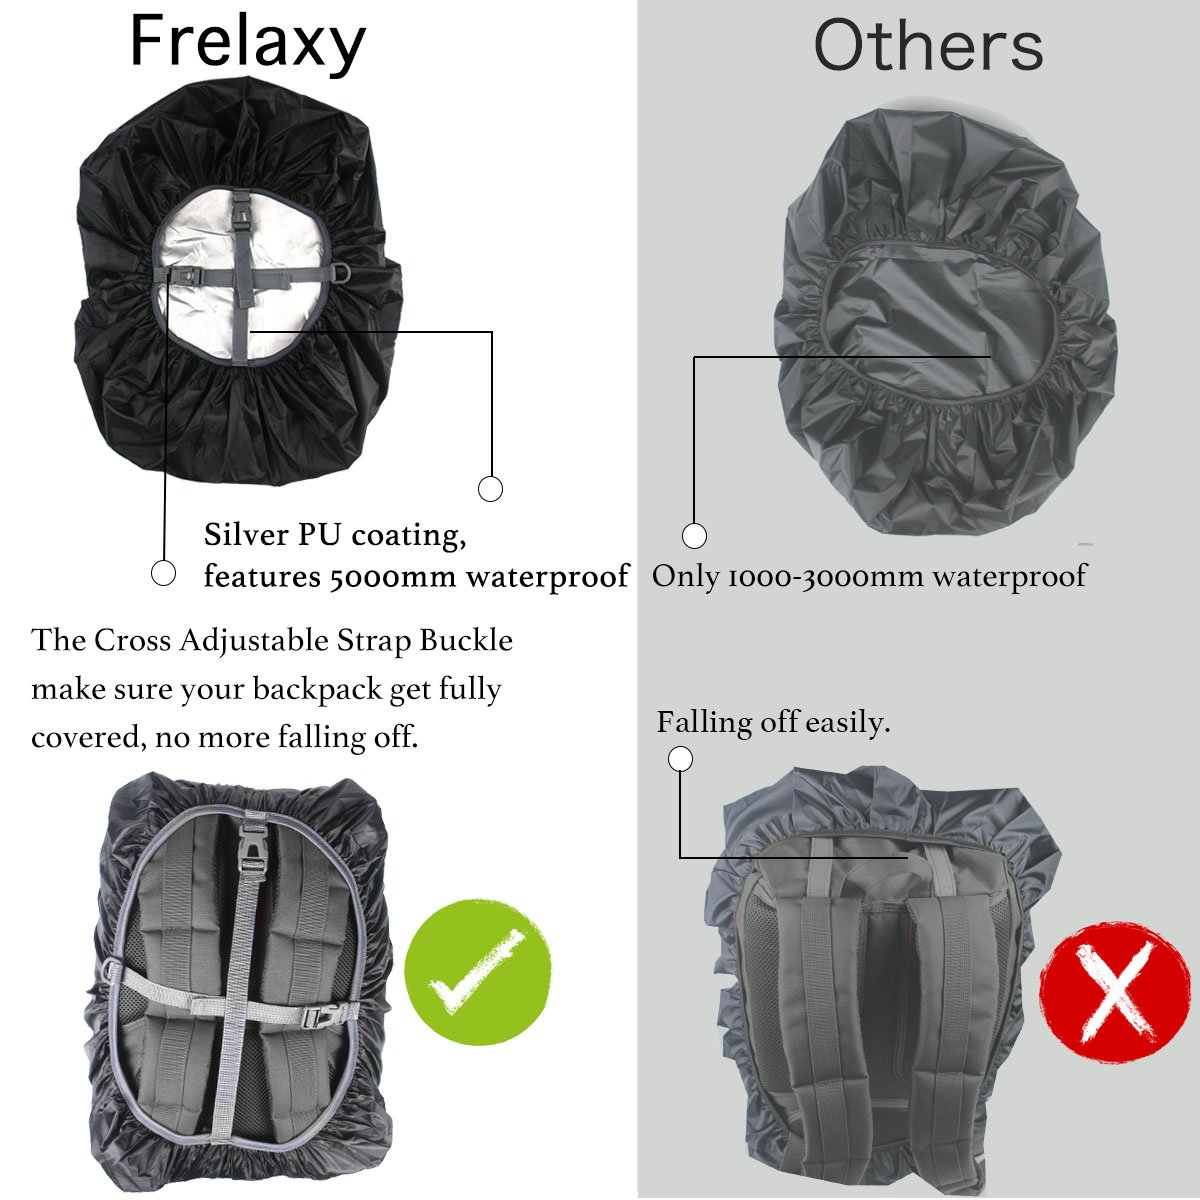 Anti-Slip Cross Buckle Strap /& Rainproof Storage Pouch for Hiking 15-90L 2019 Upgraded Triple Waterproofing Frelaxy Backpack Rain Cover Waterproof Backpack Cover Outdoor Traveling Camping